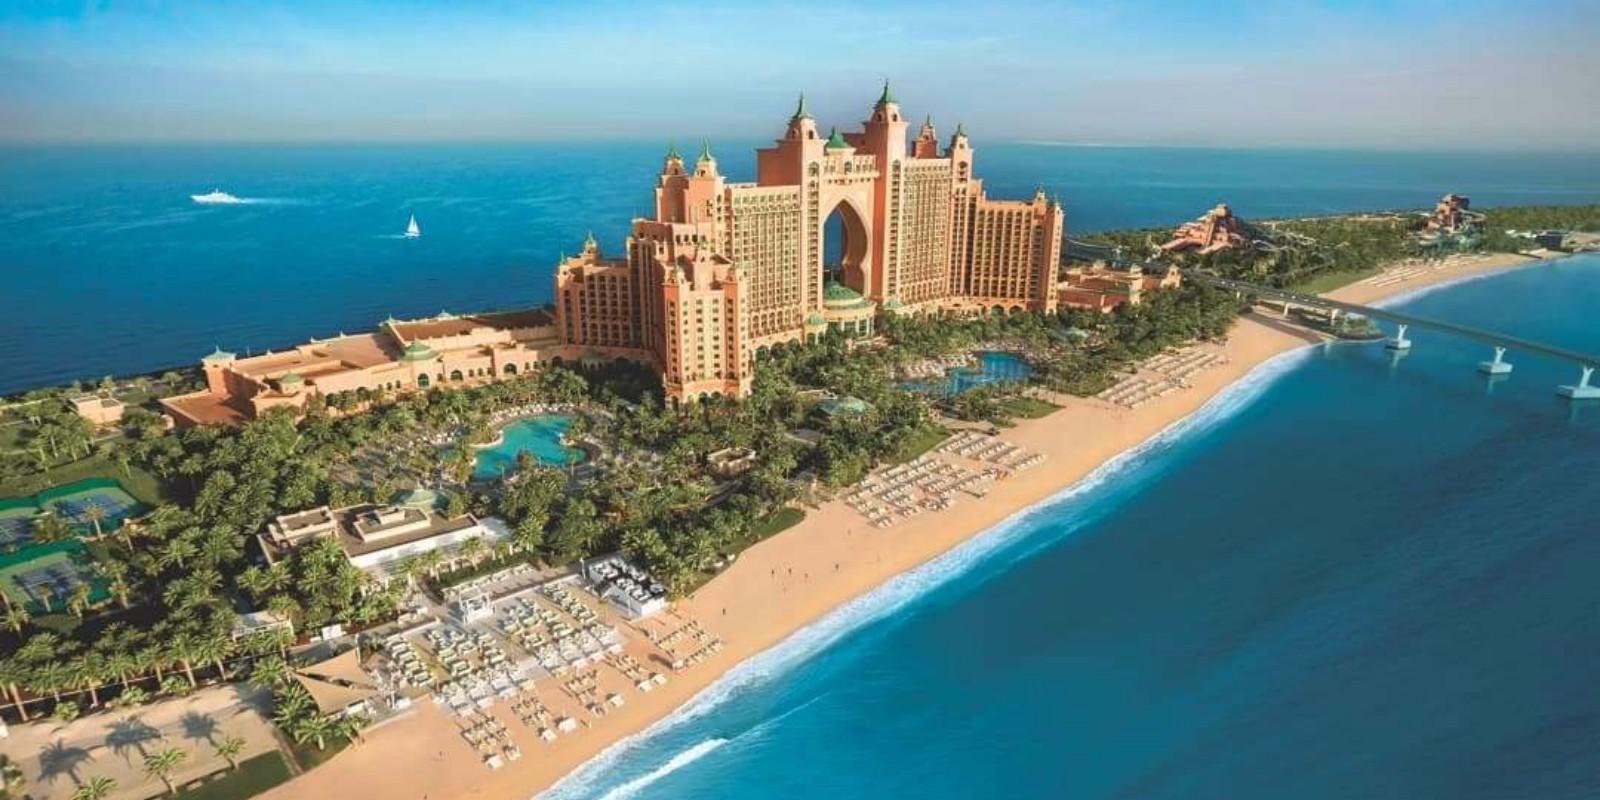 Atlantis, The Palm Dubai Aerial Resort Shot